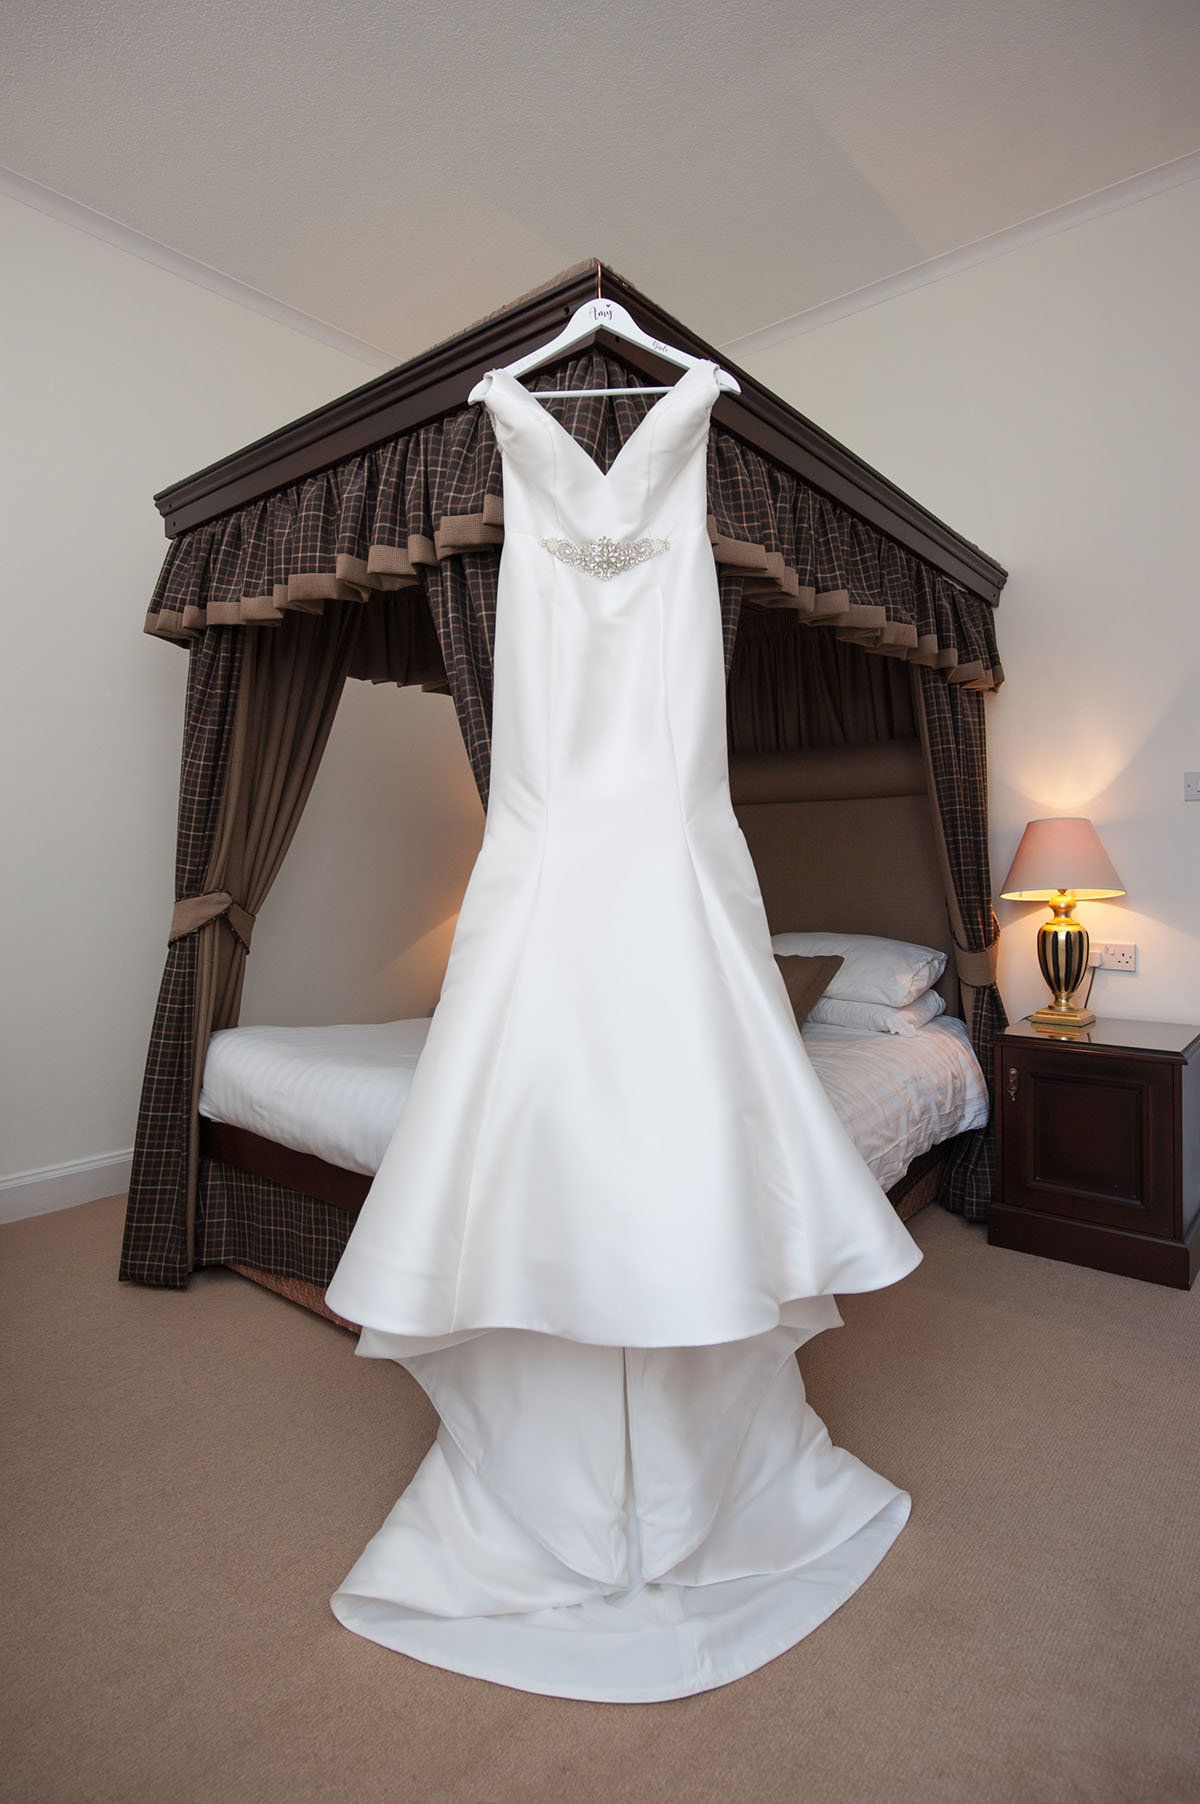 Wedding portfolio - white silk wedding dress hanging on the end of a brown four poster bed in a room with a pale pink carpet